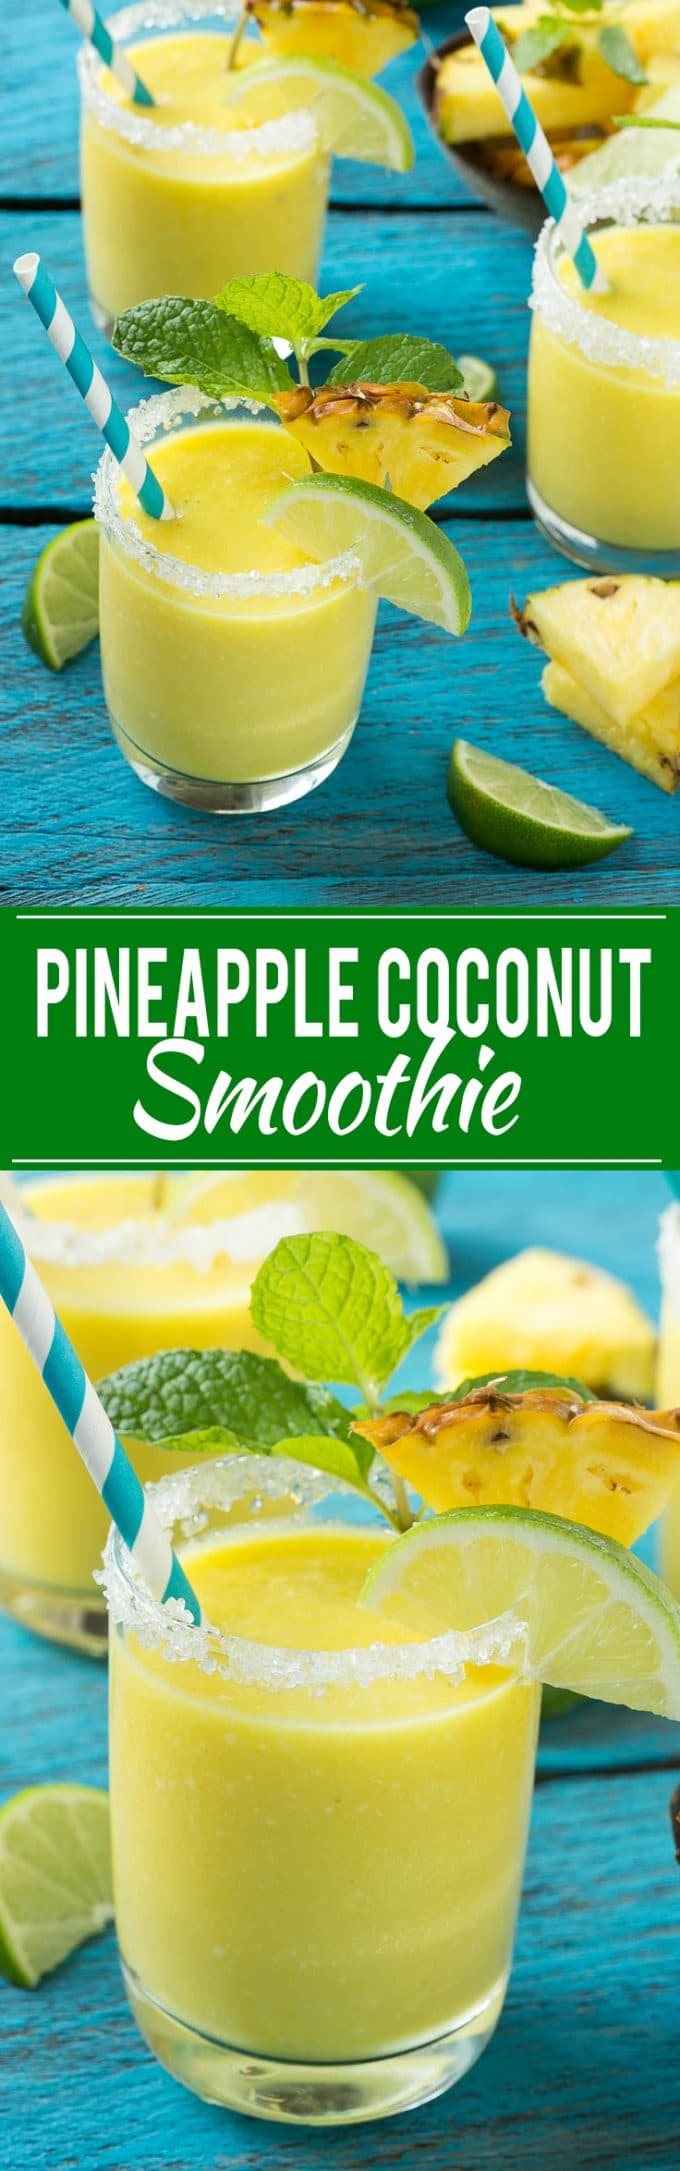 Pineapple Coconut Smoothie Recipe |Tropical Smoothie | Pineapple Smoothie  #smoothie #pineapple #coconut #healthy #cleaneating #dinneratthezoo